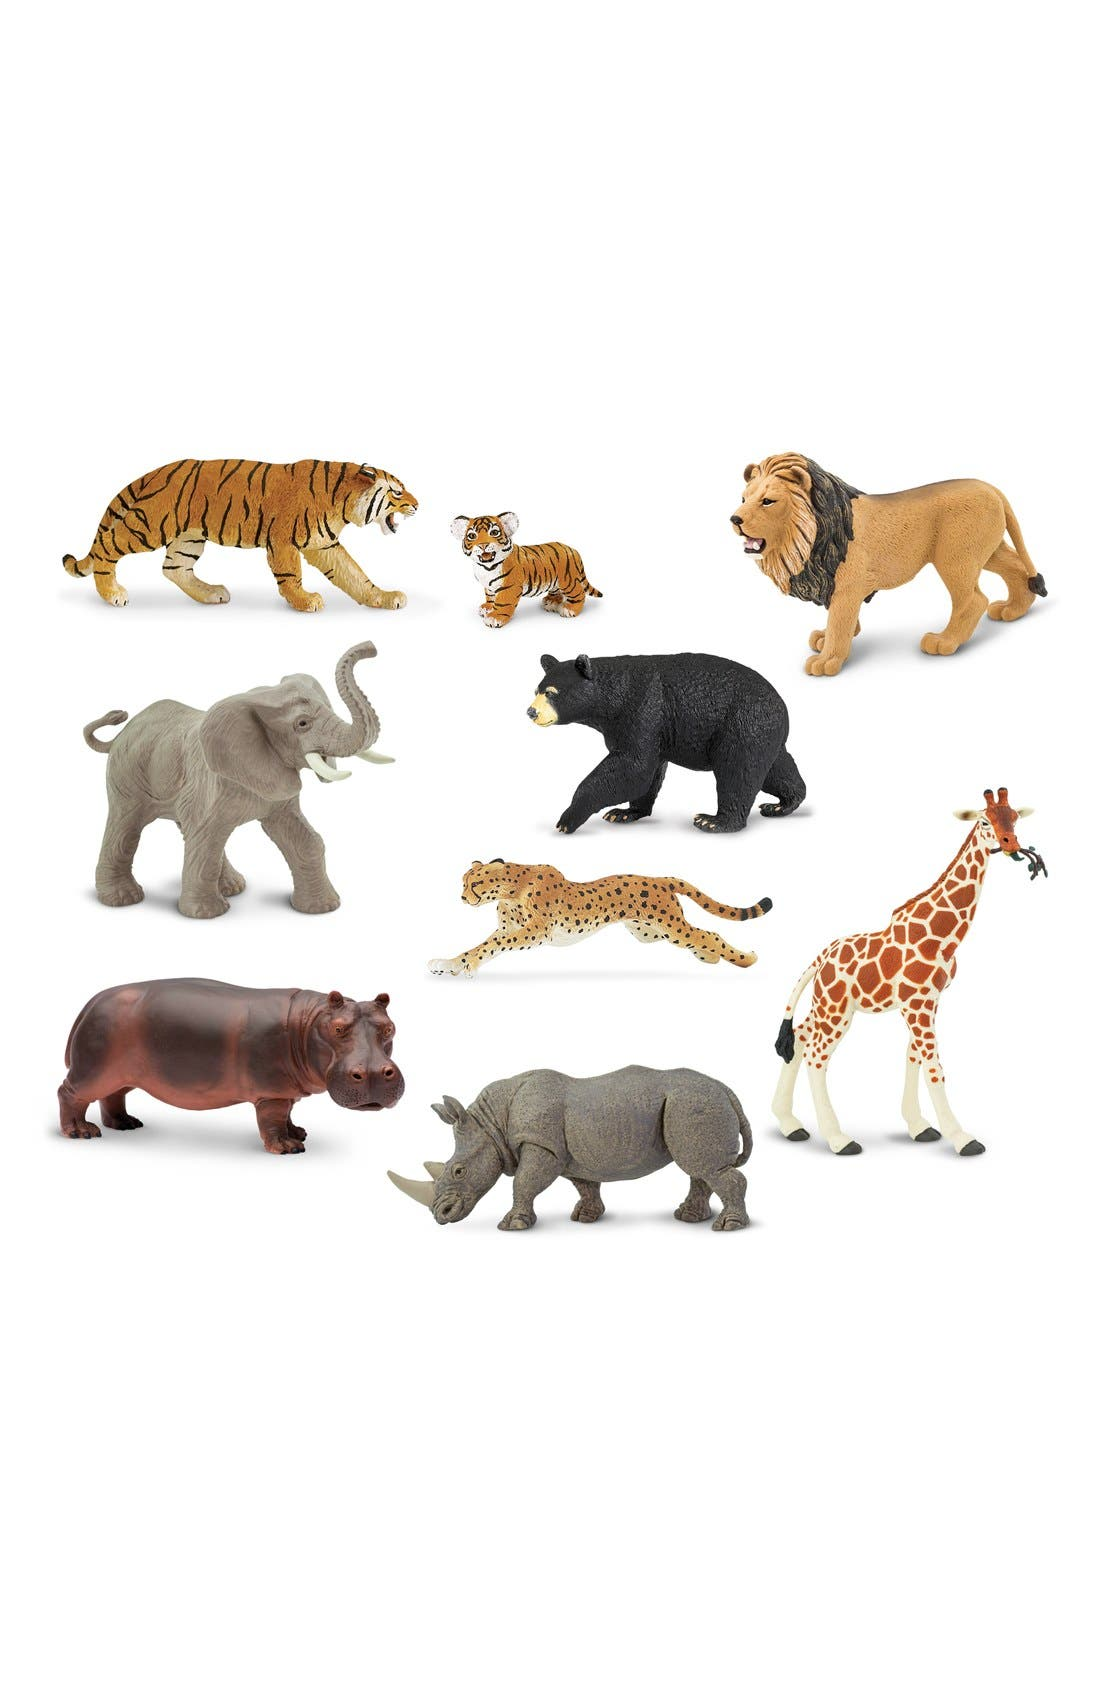 Main Image - Safari Ltd. Wildlife Figurines (Set of 9)